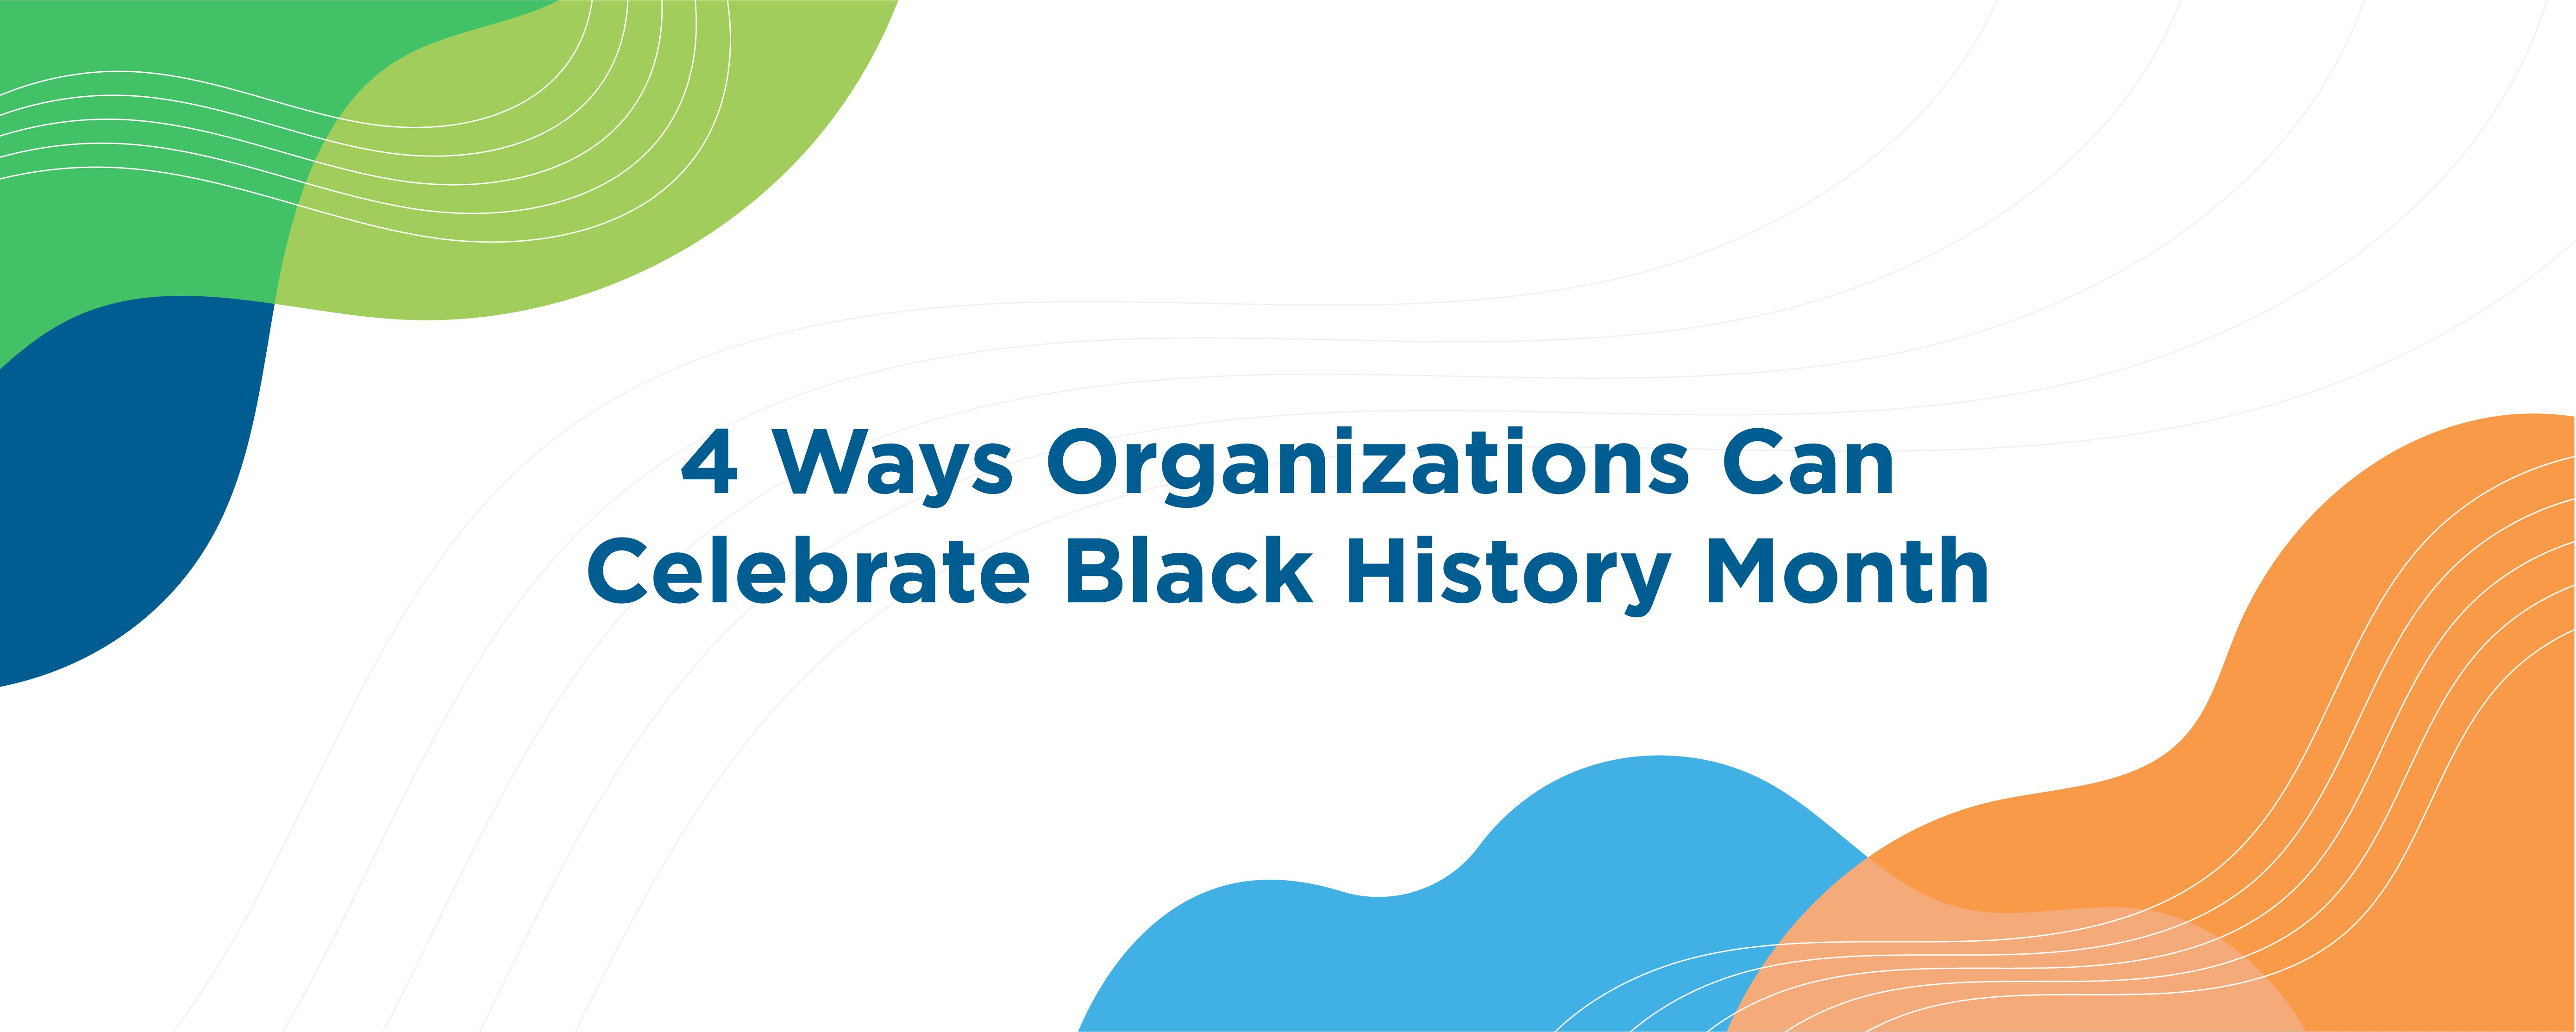 4 Ways Organizations Can Celebrate Black History Month